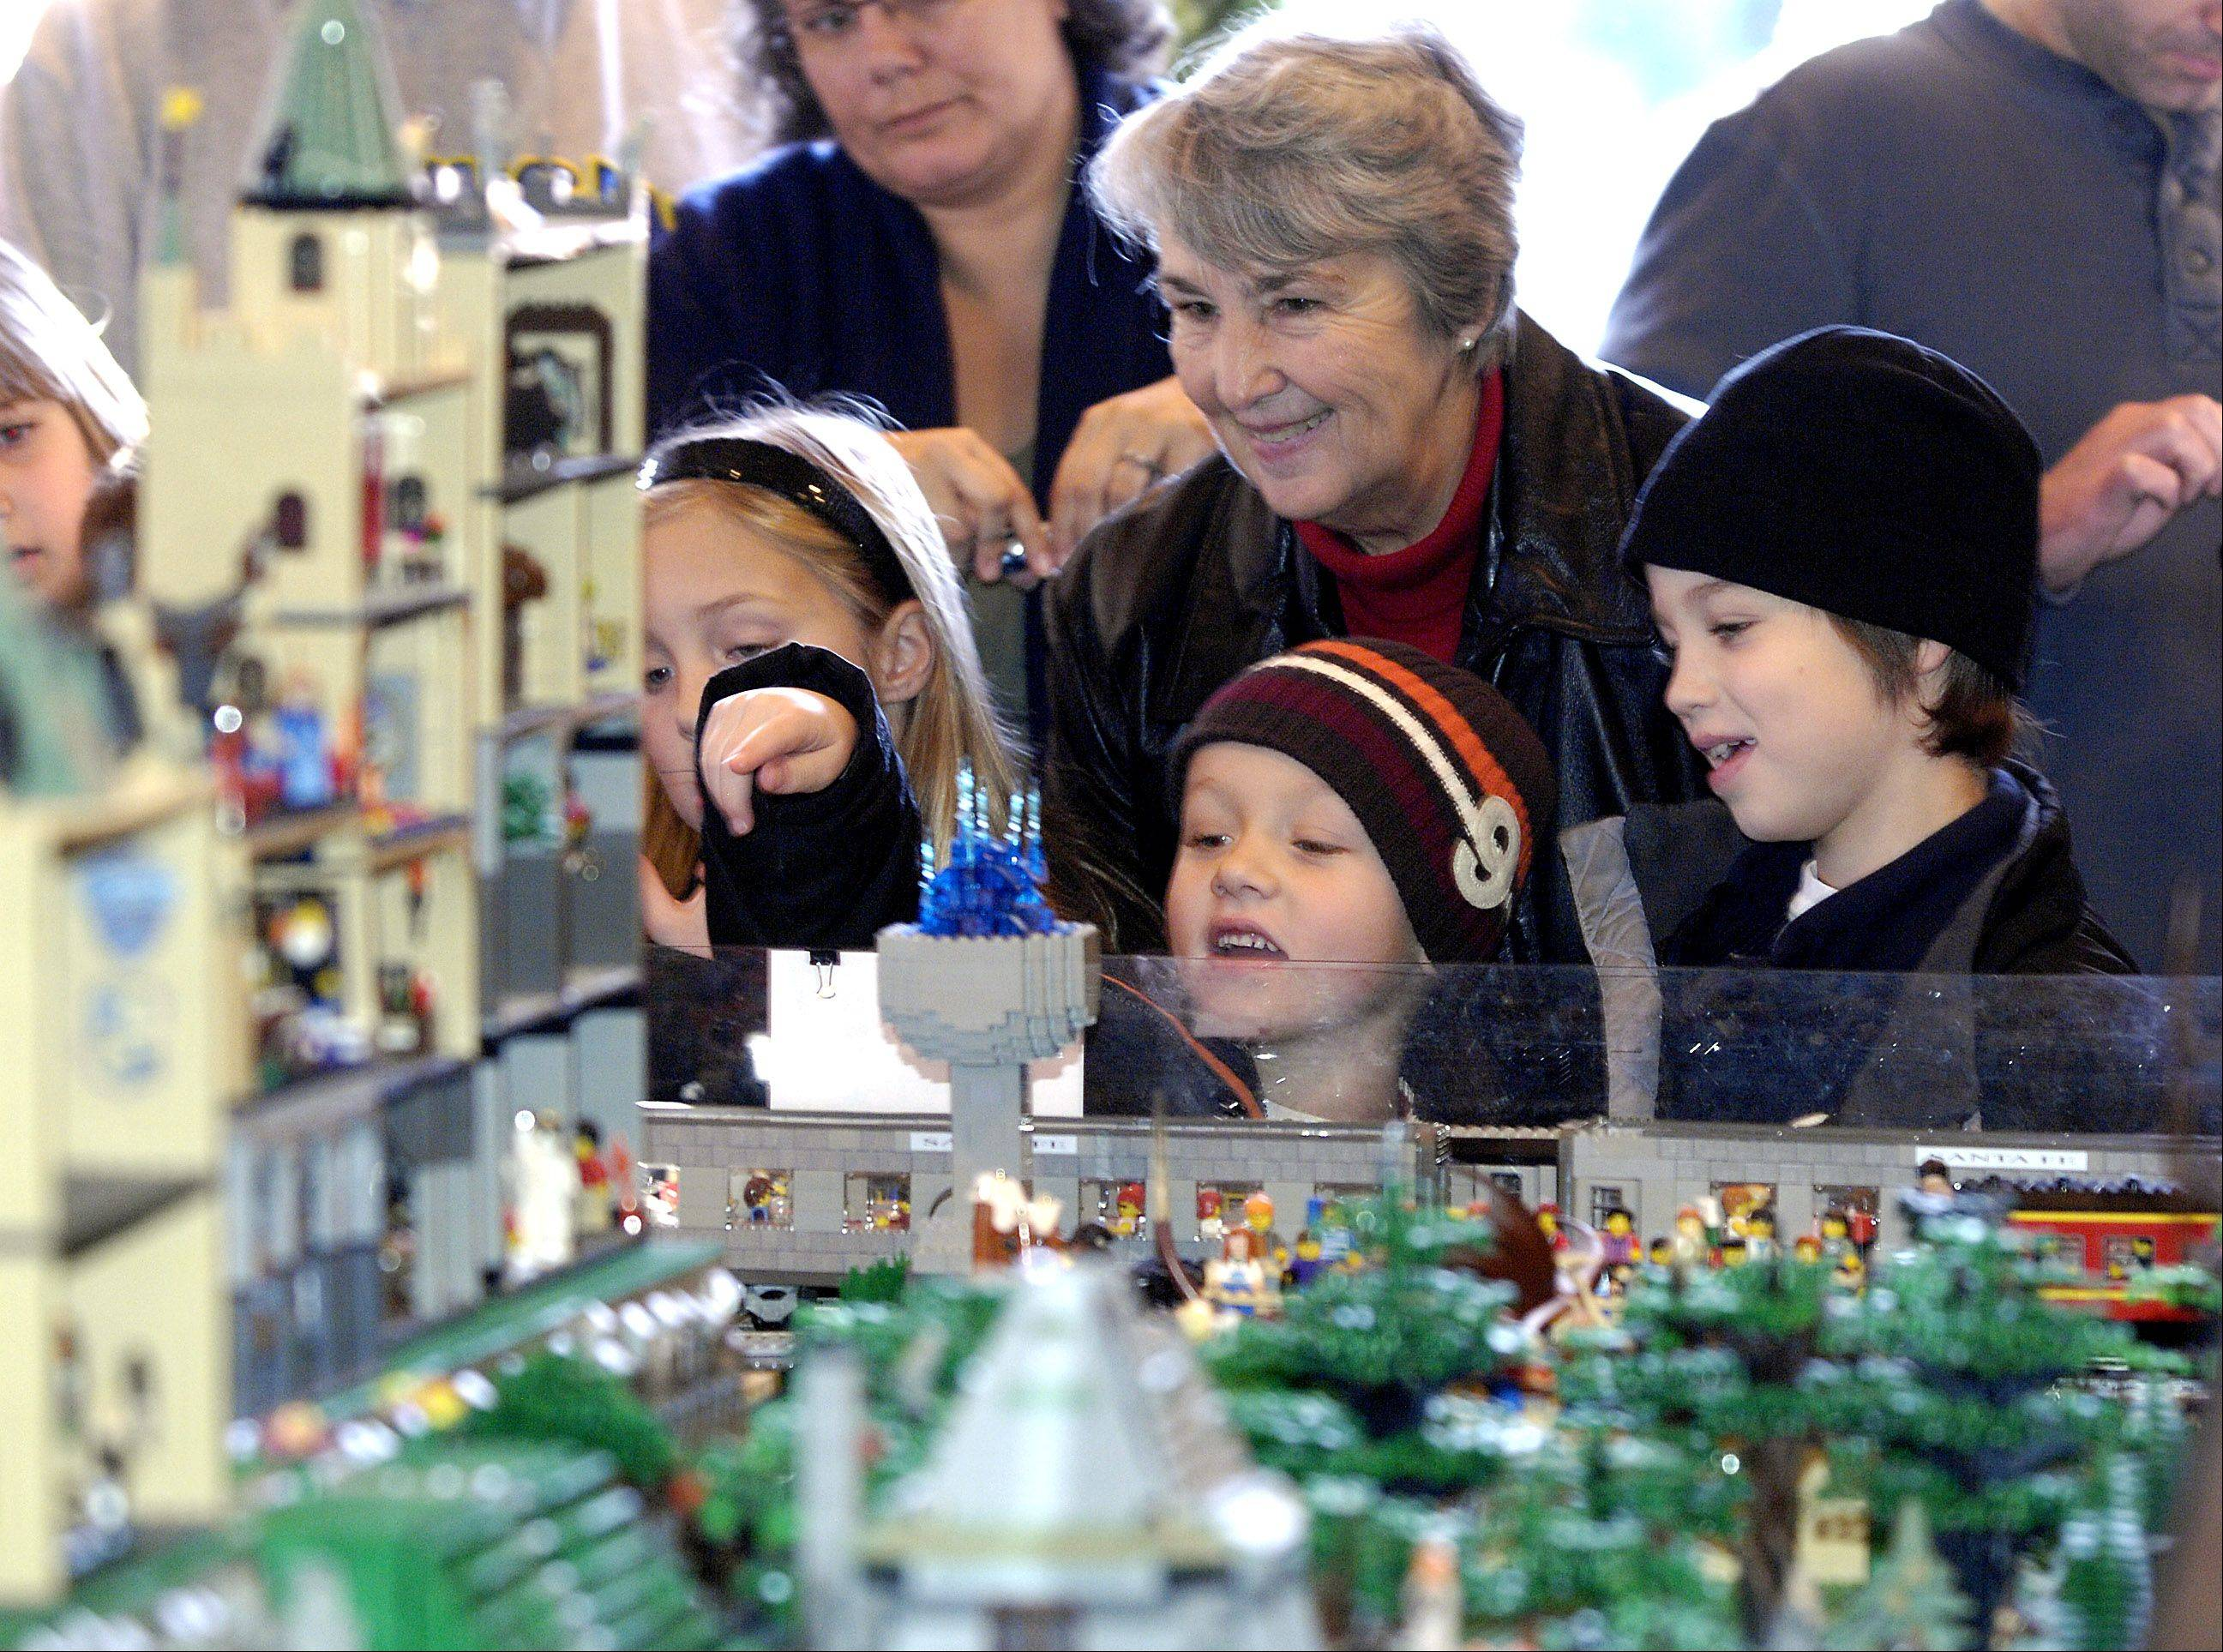 See colorful scenes, created with thousands of Lego bricks, at the annual Lego Holiday Train Show at Cantigny Park in Wheaton.